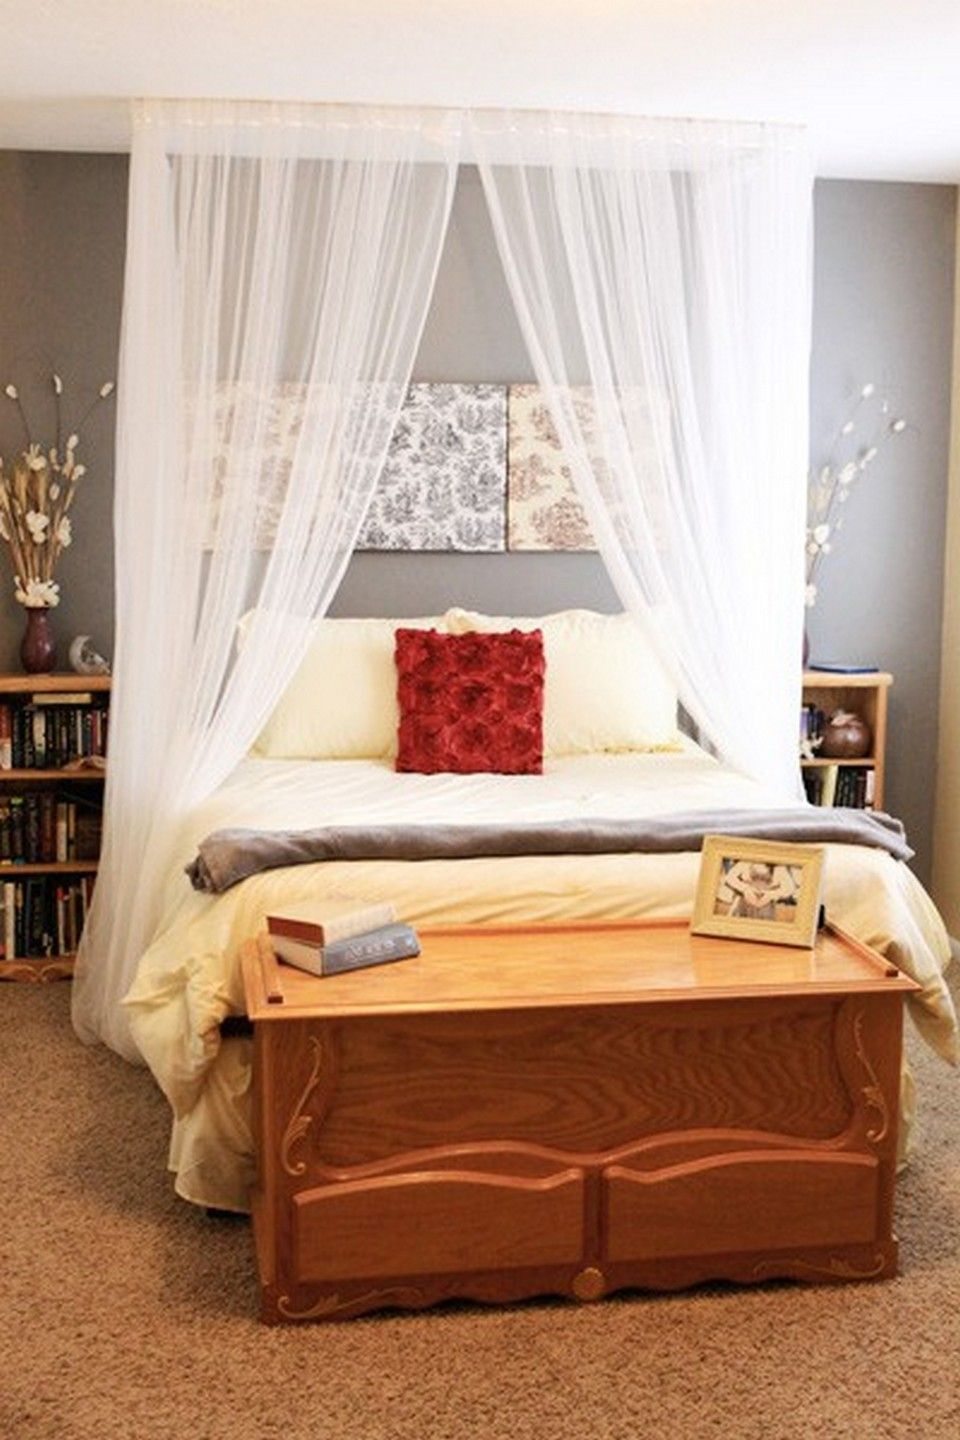 Bedroom Design Ideas On A Budget Simple 95 Brilliant Romantic Bedroom Design Ideas On A Budget  Romantic Design Ideas